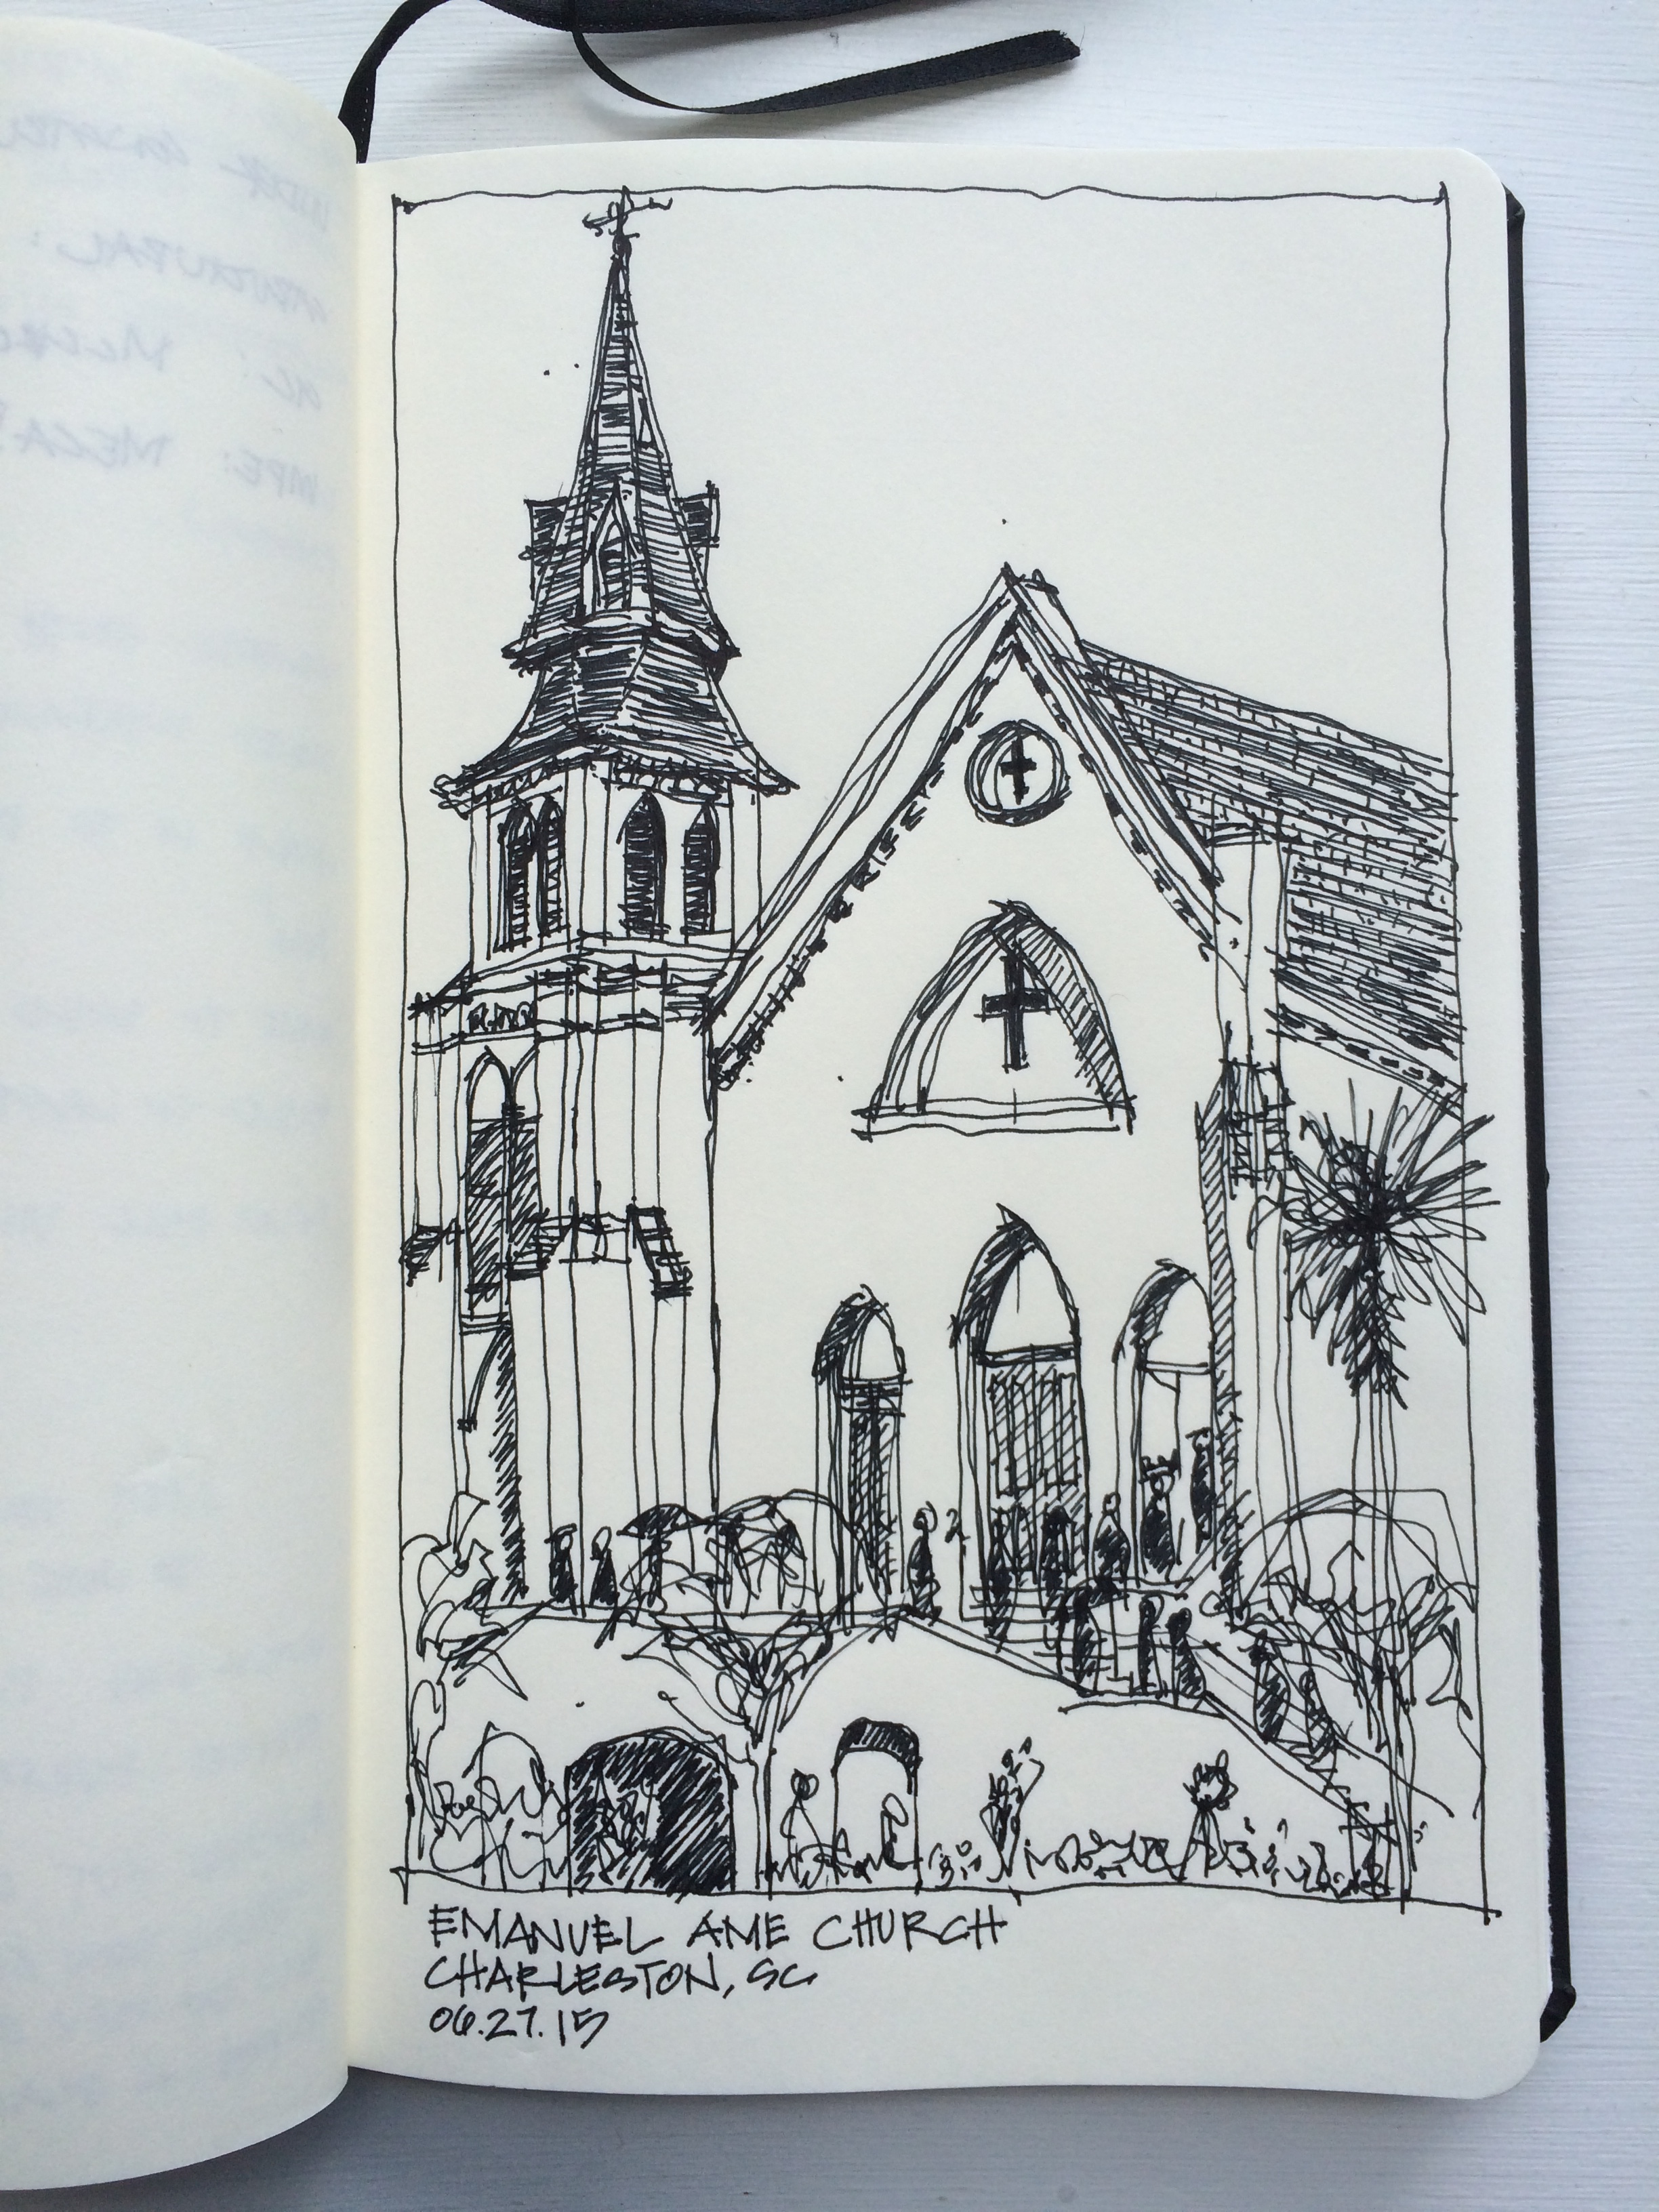 Sketching the Emanuel AME Church in Charleston, SC was a reflective way to acknowledge the dark happenings of our city and pay respect.